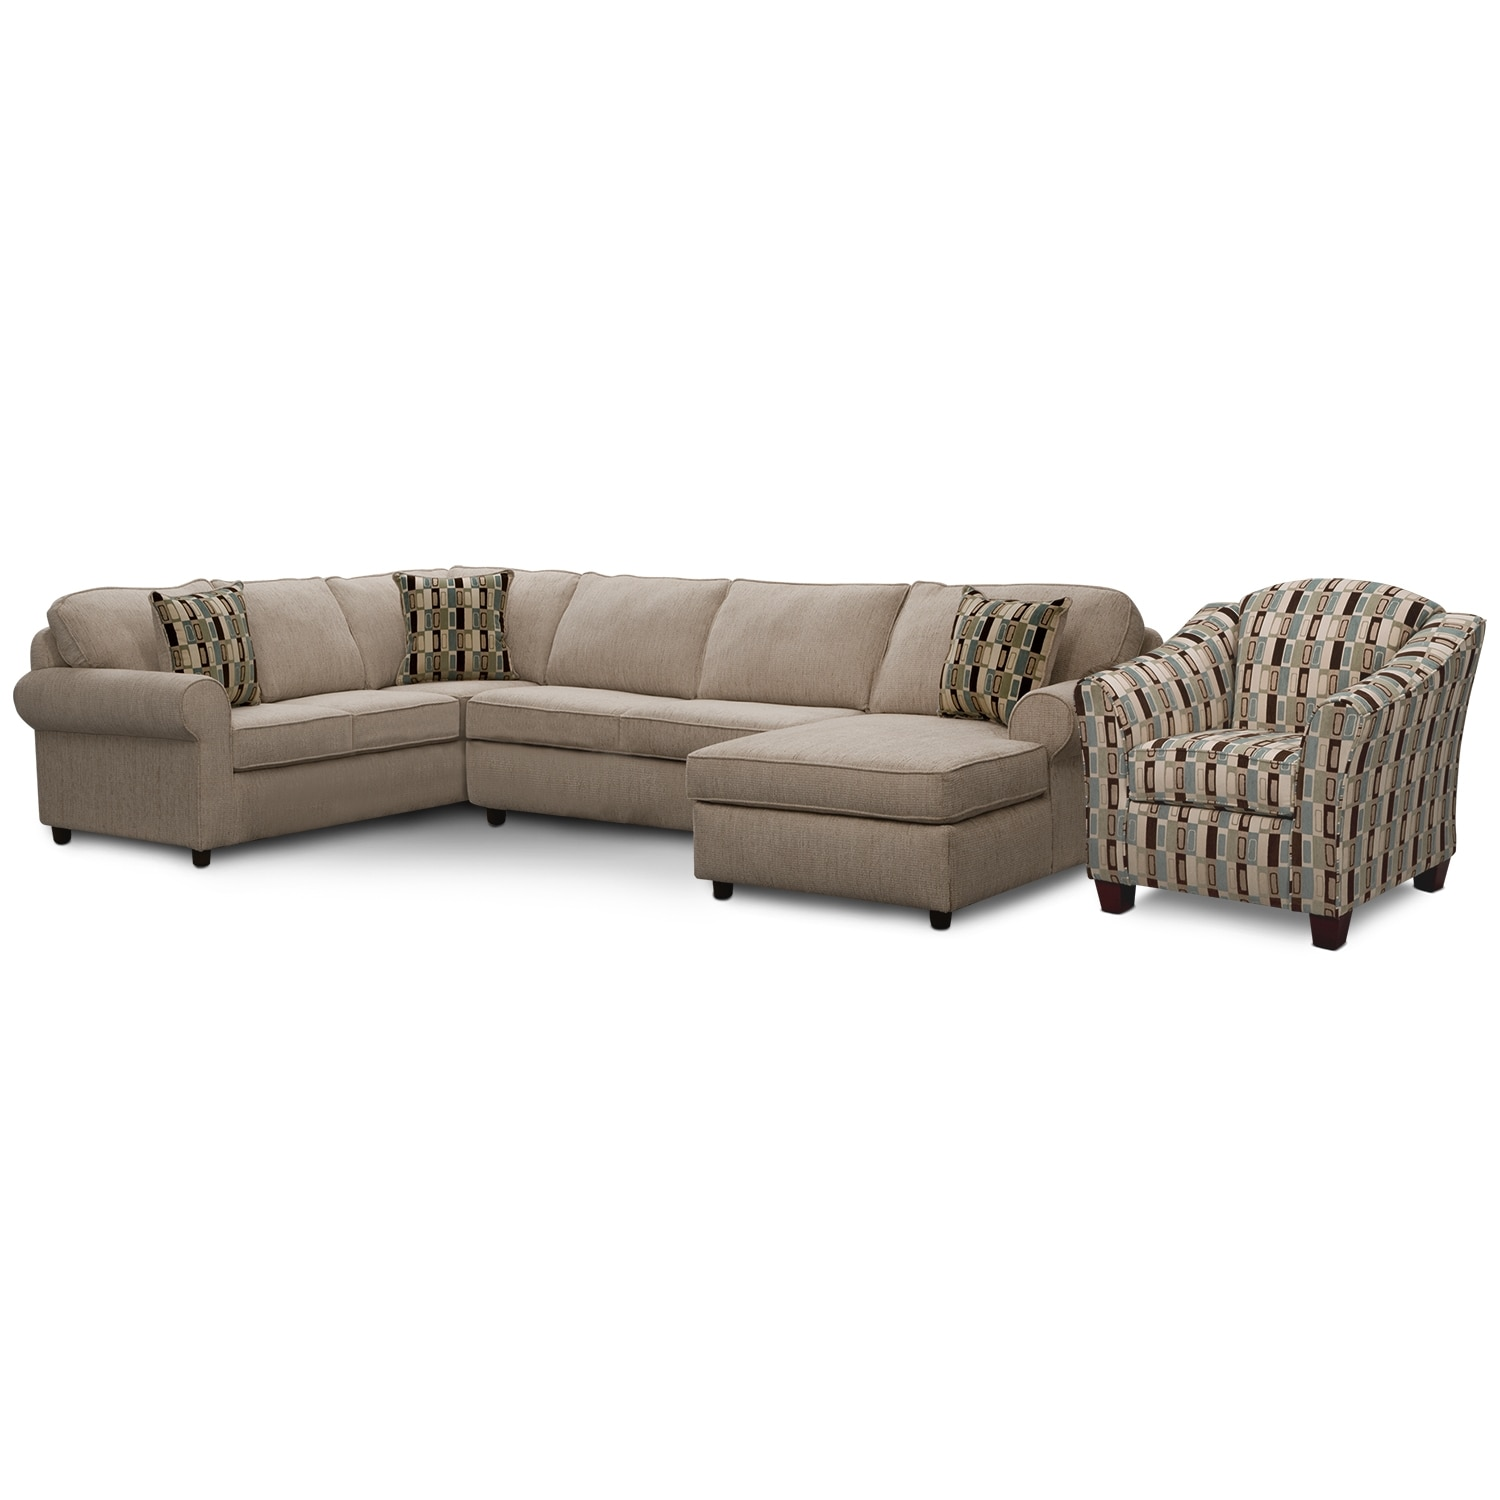 [Monarch II 3 Pc. Sectional and Accent Chair]